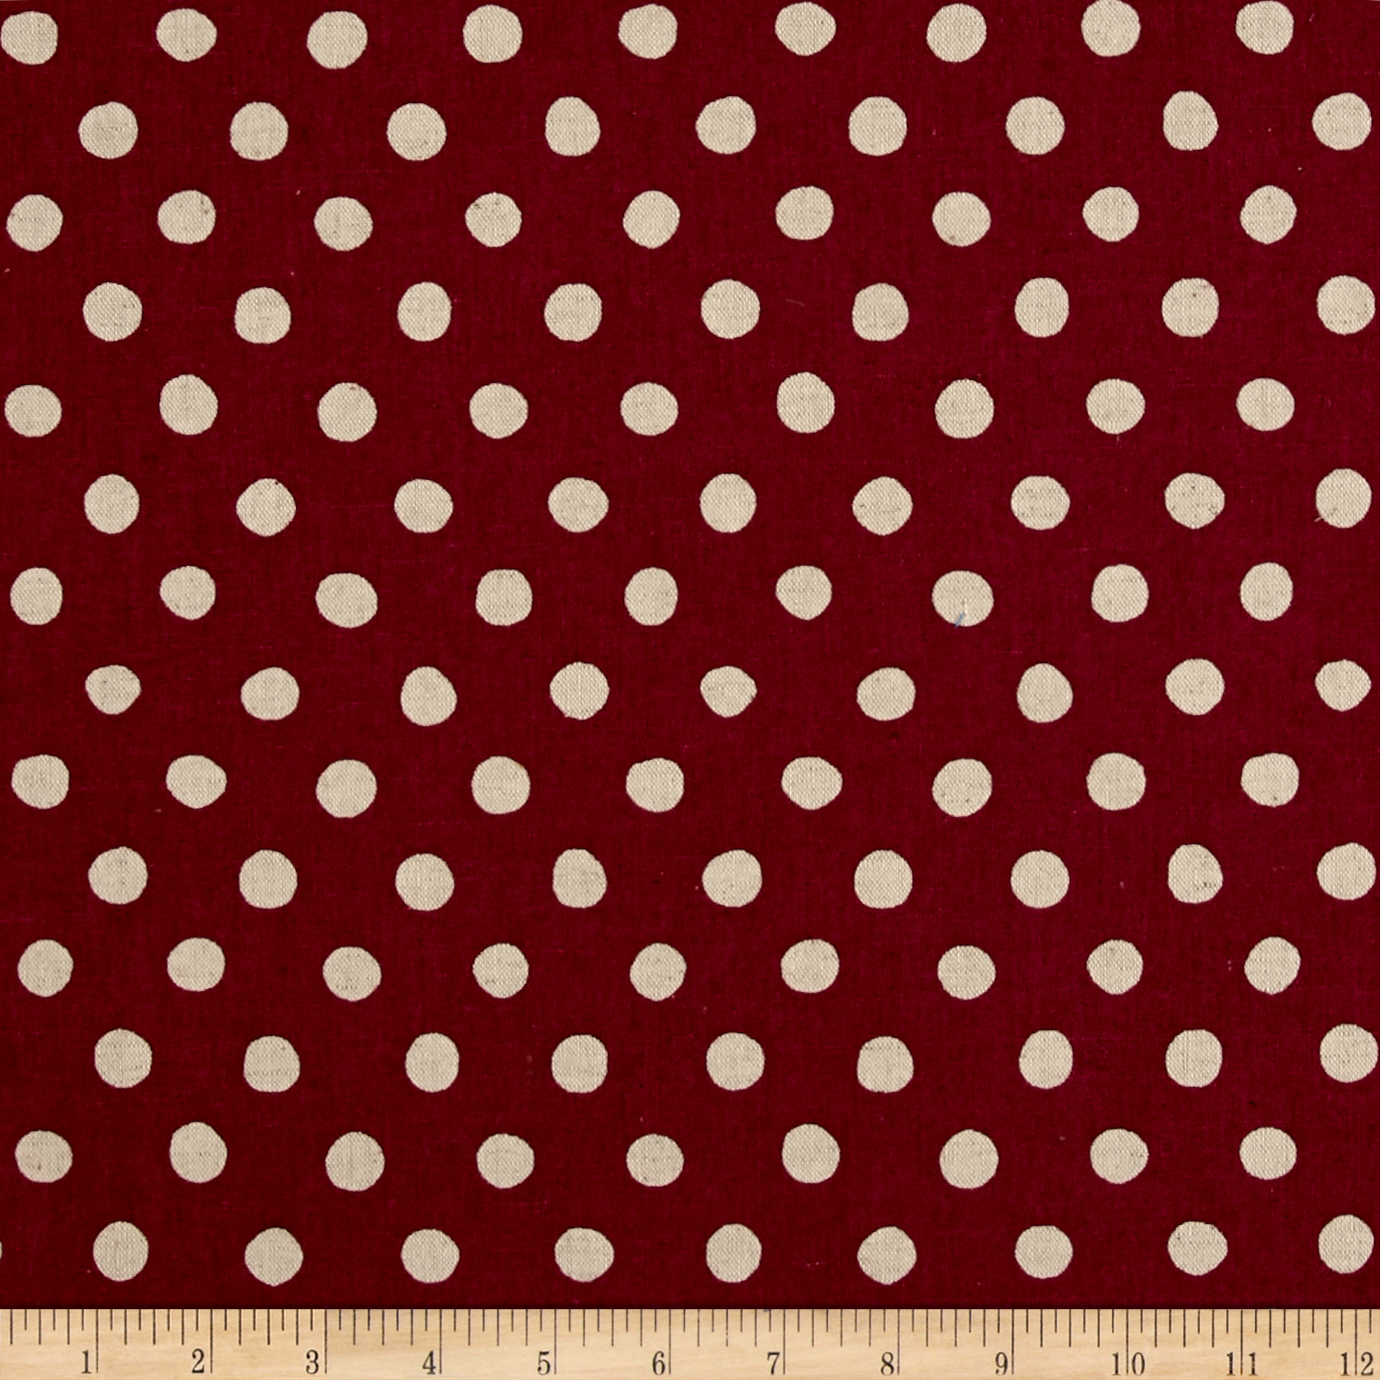 Kaufman Sevenberry Canvas Natural Dots Large Fuchsia Fabric by Kaufman in USA